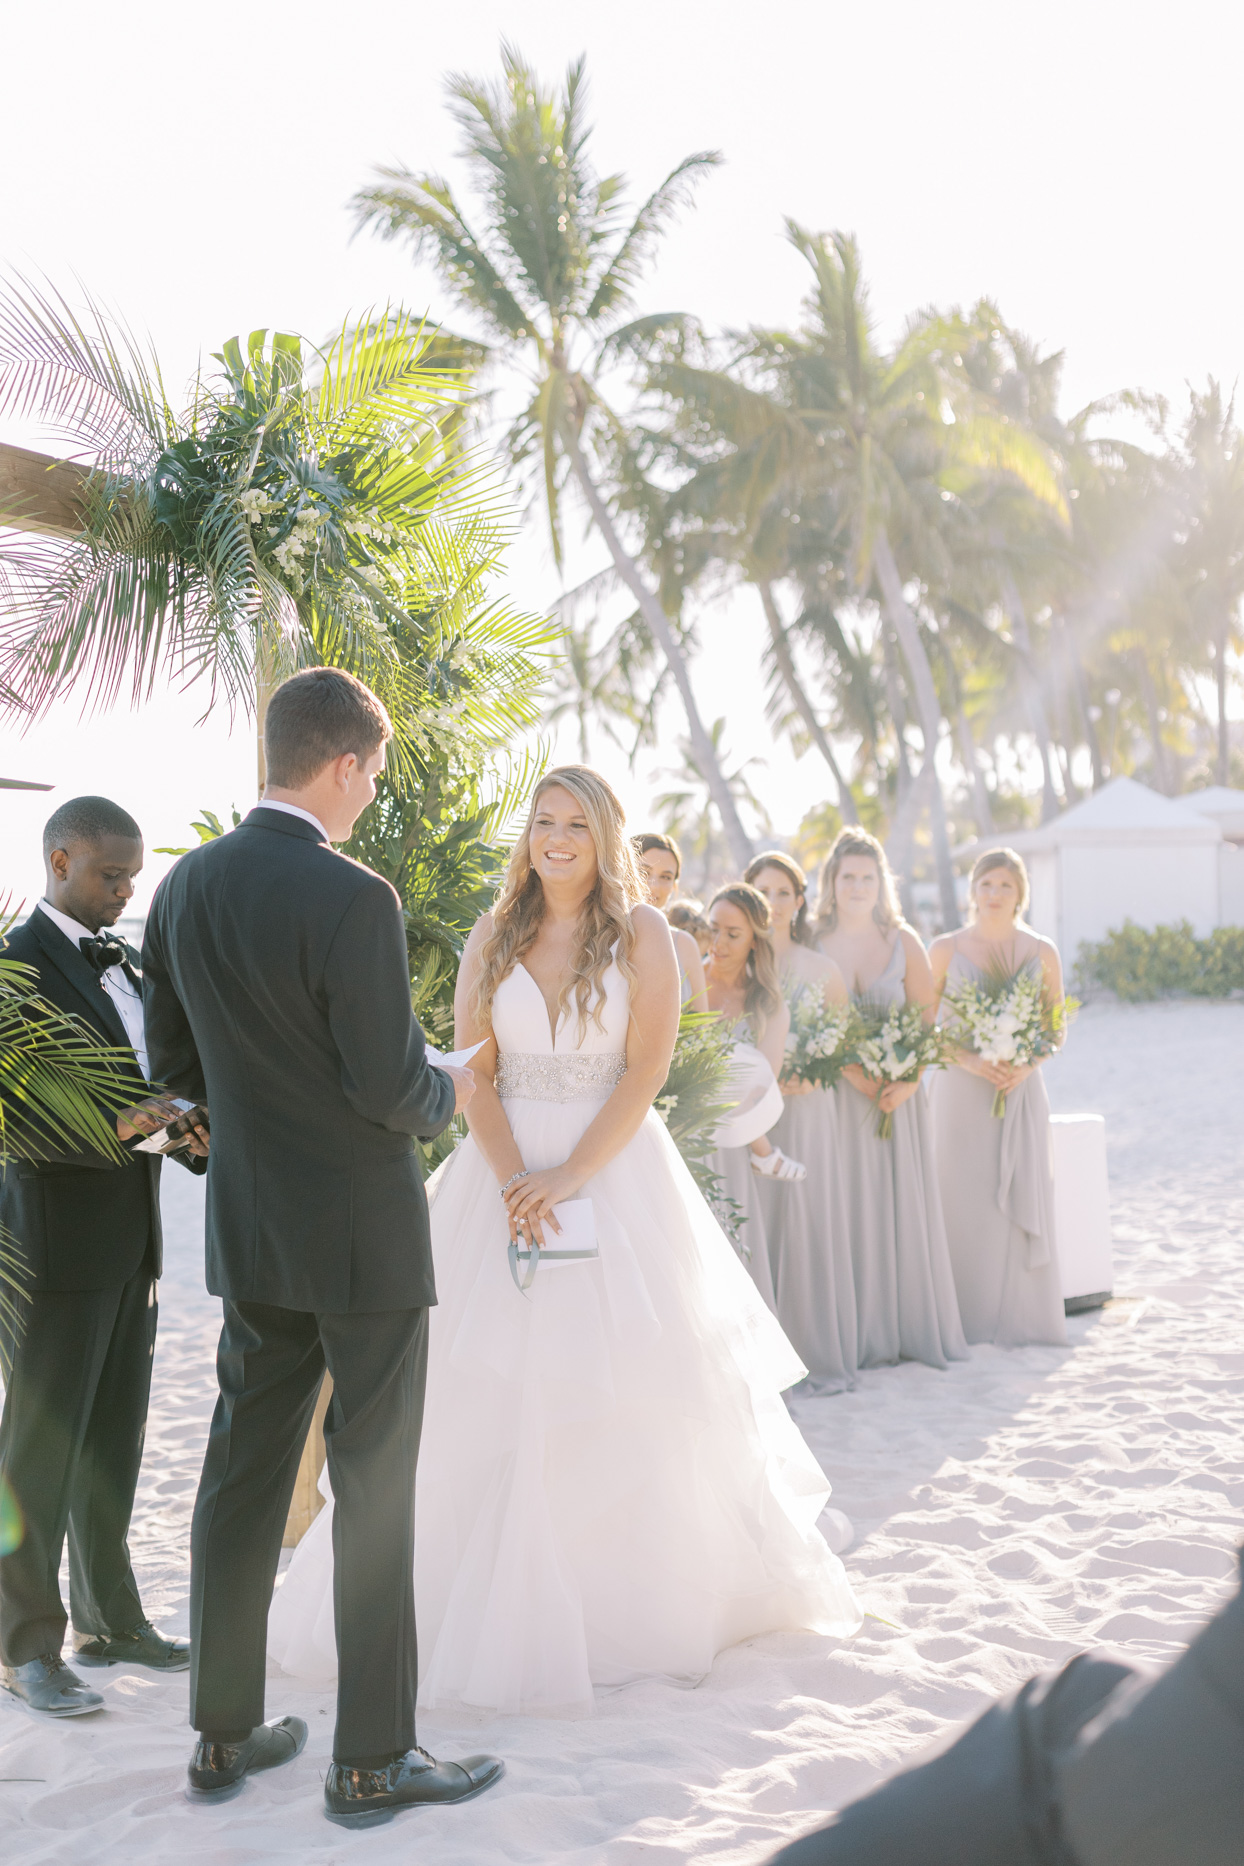 bride smiling at groom during wedding ceremony vows